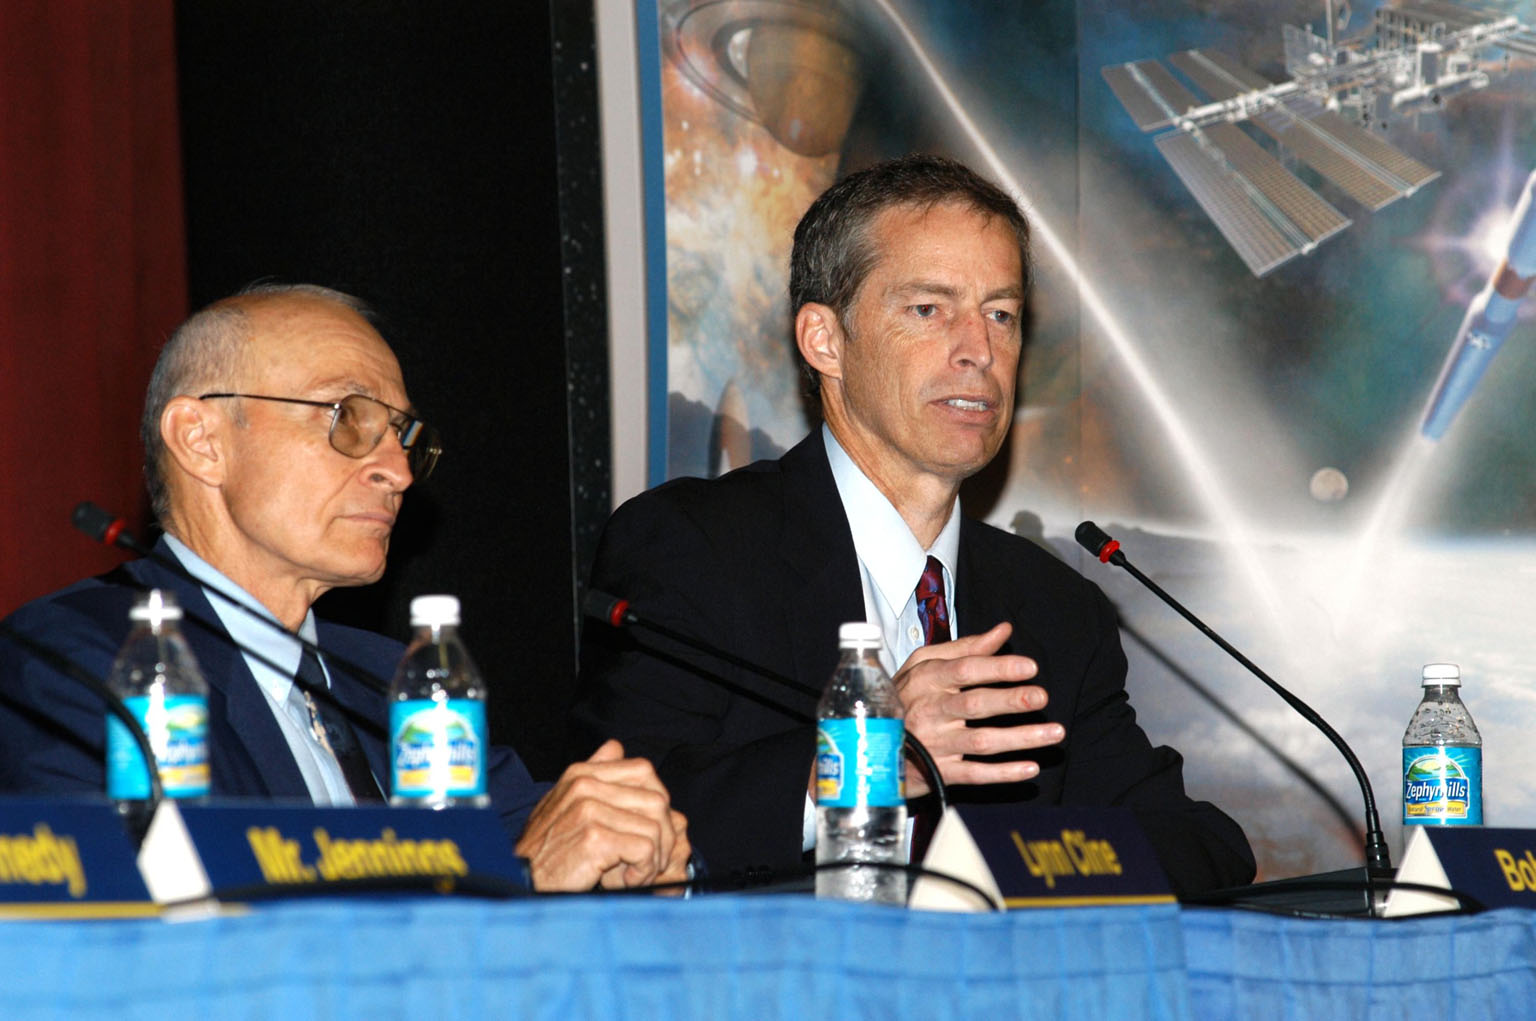 KENNEDY SPACE CENTER, FLA. -- Bob Sieck (left), former Director of Space Shuttle Processing at KSC, looks on as Jim Wetherbee, astronaut and Technical Assistant to the Director of Safety and Mission Assurance at Johnson Space Center, responds to a question asked by a member of the audience attending the Culture Change Process All Hands Meeting in the Training Auditorium. The purpose of the meeting was for employees to gain further insight into the Agency?s Vision for Space Exploration and the direction cultural change will take at KSC in order to assume its role within this vision. Other panel members were James W. Kennedy, KSC director; Jim Jennings, Deputy Associate Administrator for Institutions and Asset Management; and Lynn Cline, Deputy Associate Administrator for Space Flight.